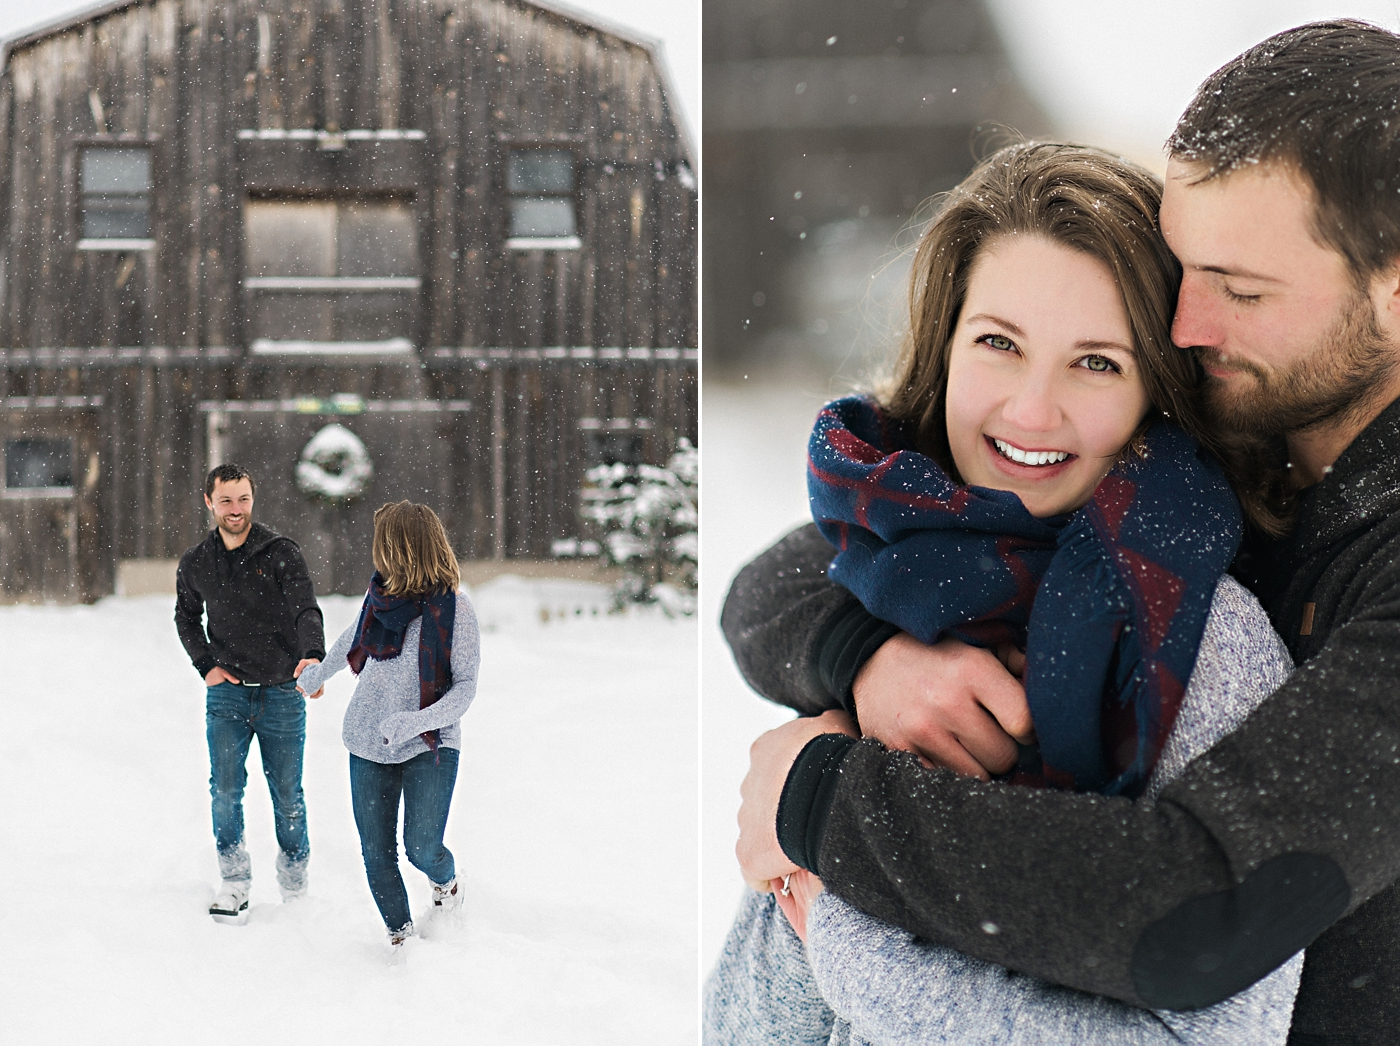 Candace-Berry-Photography-Halifax-Wedding-Photographer-Valley-Engagement_Emily&Macall15.jpeg